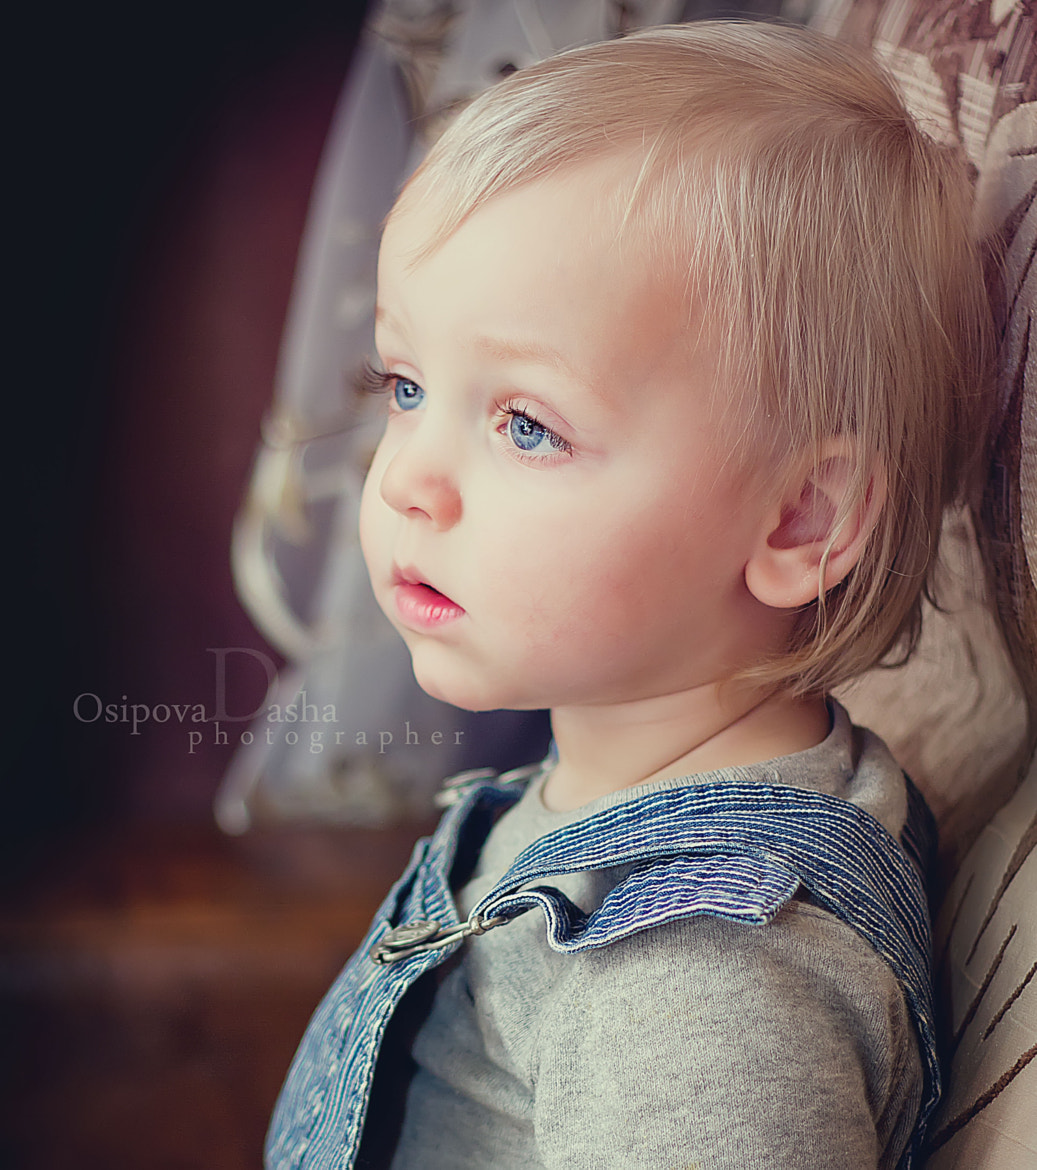 Photograph mу baby by DASHA OSIPOVA on 500px